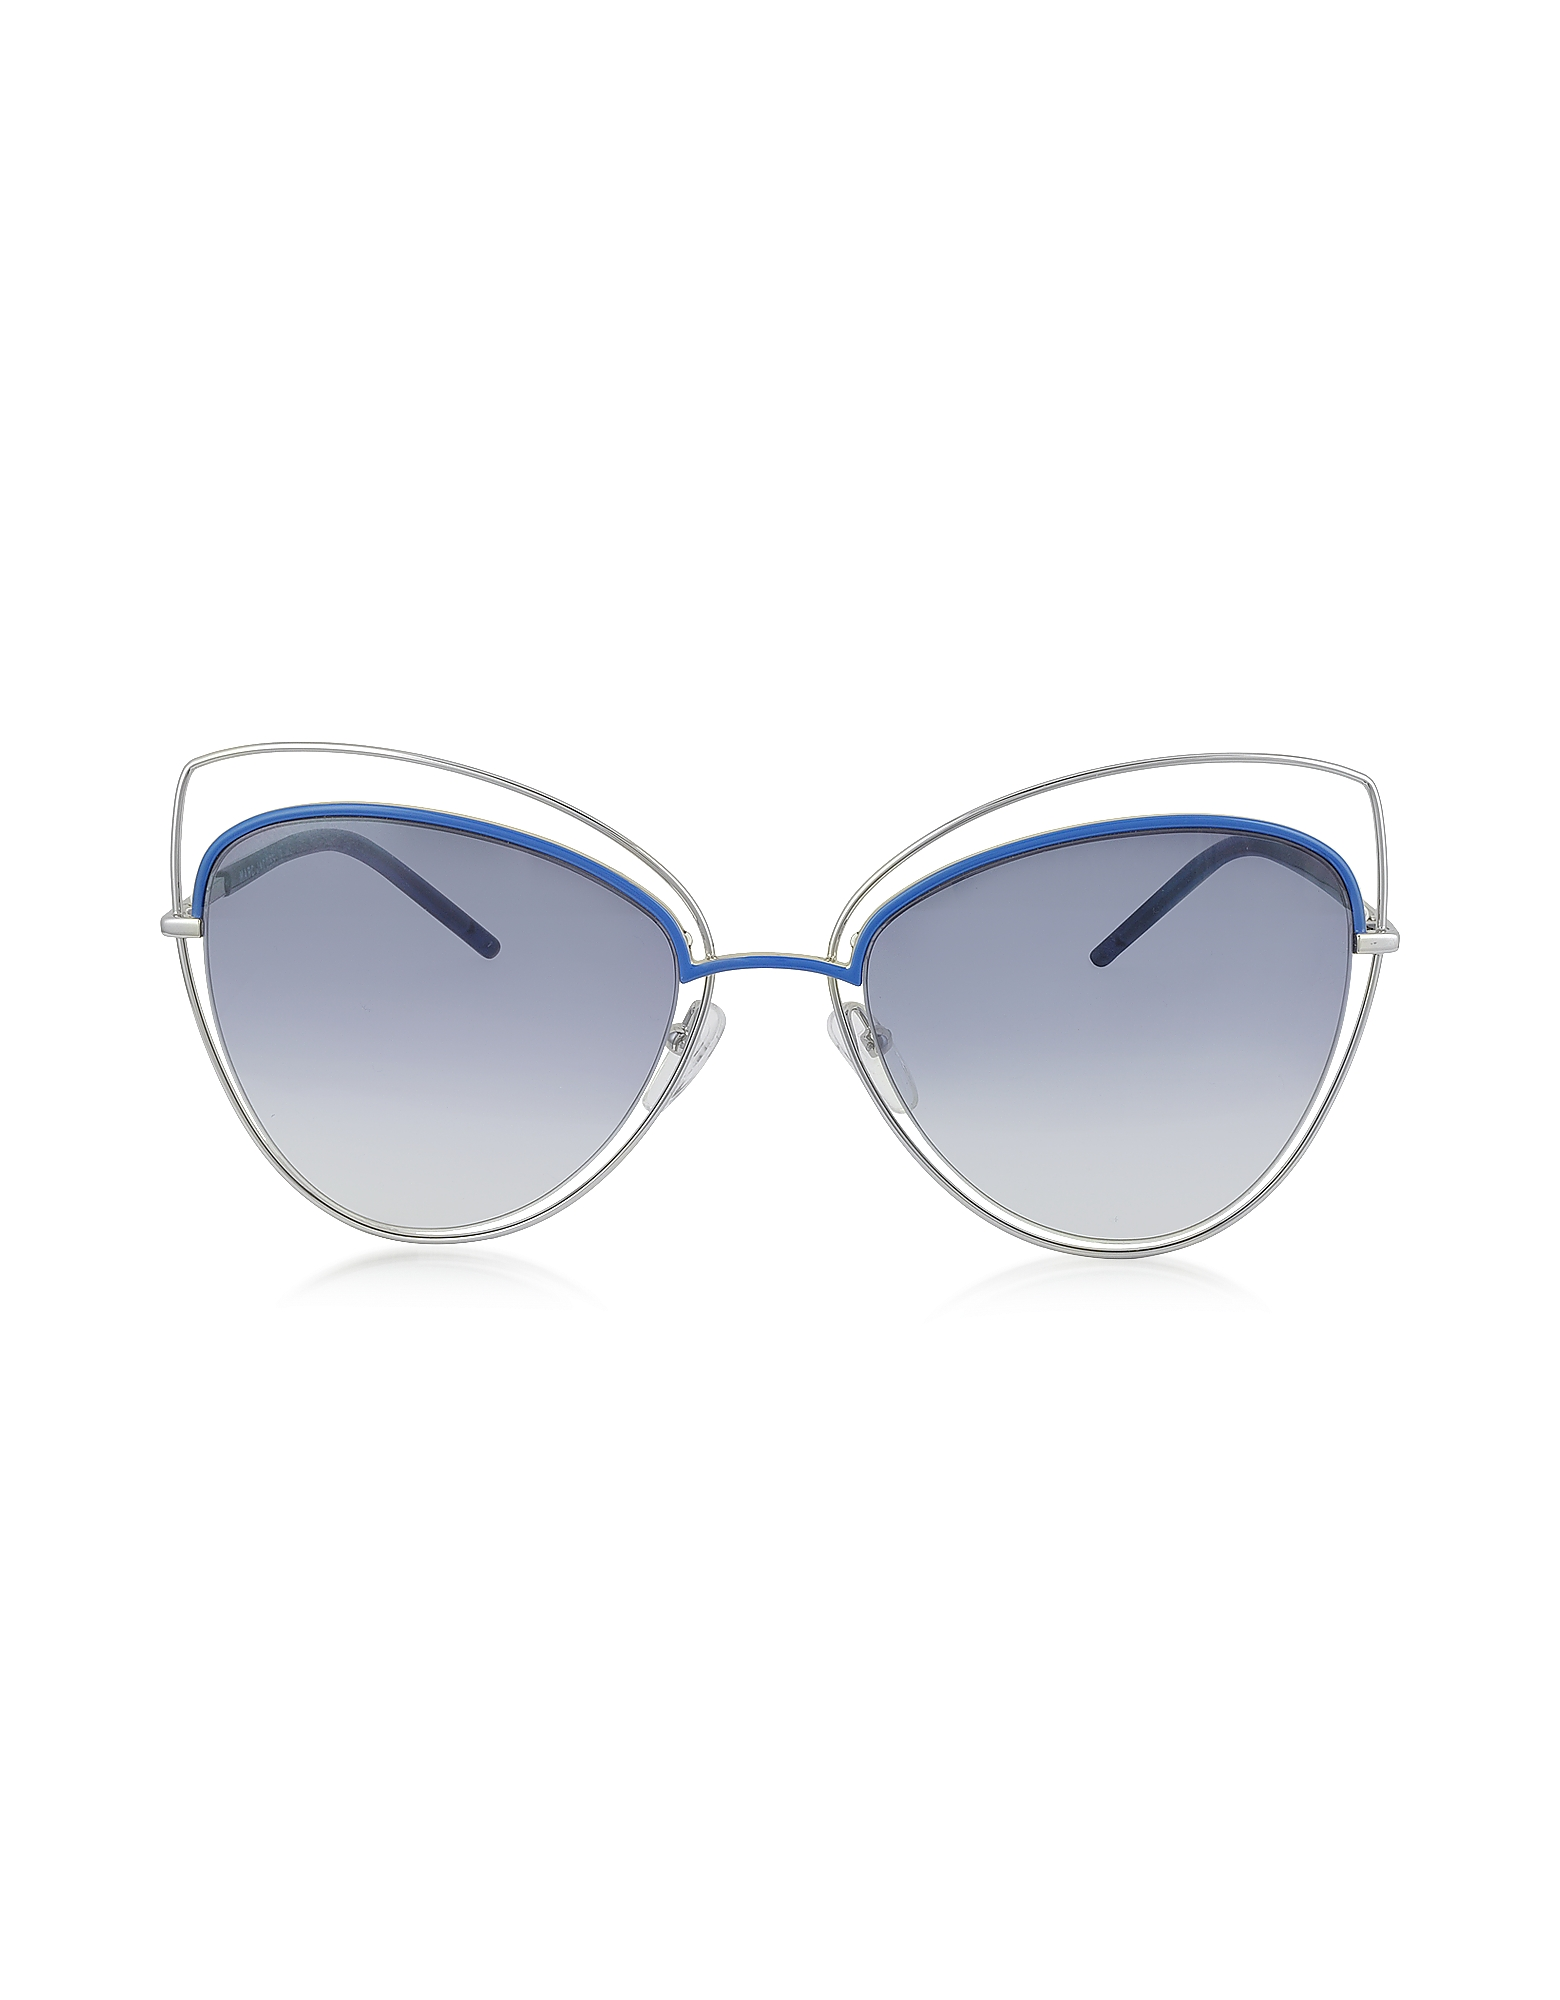 Marc Jacobs Designer Sunglasses, MARC 8/S Metal and Acetate Cat Eye Women's Sunglasses